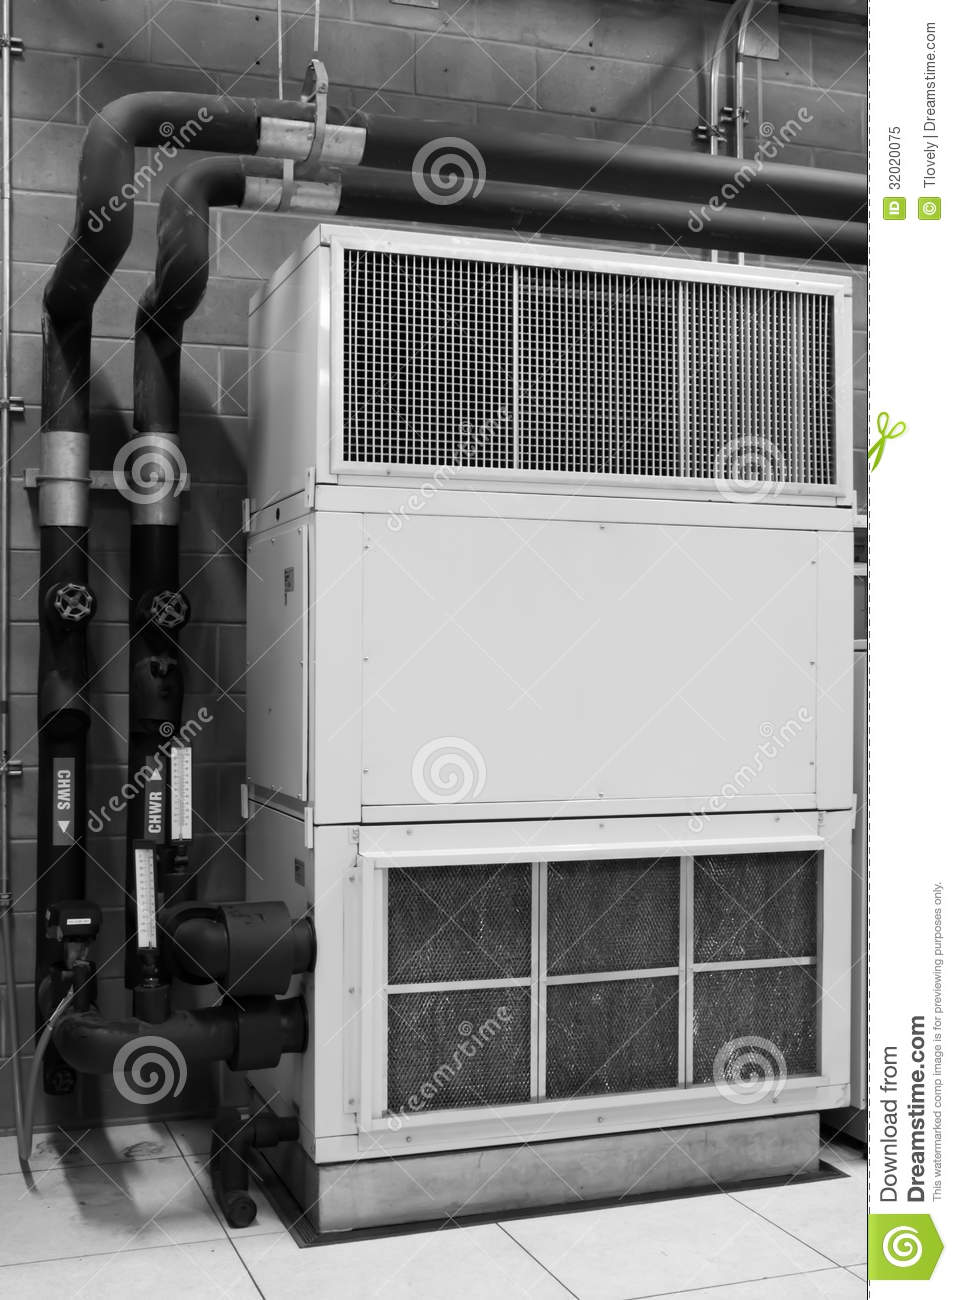 Construction Air Conditioner : Air conditioning stock image of metal assembly